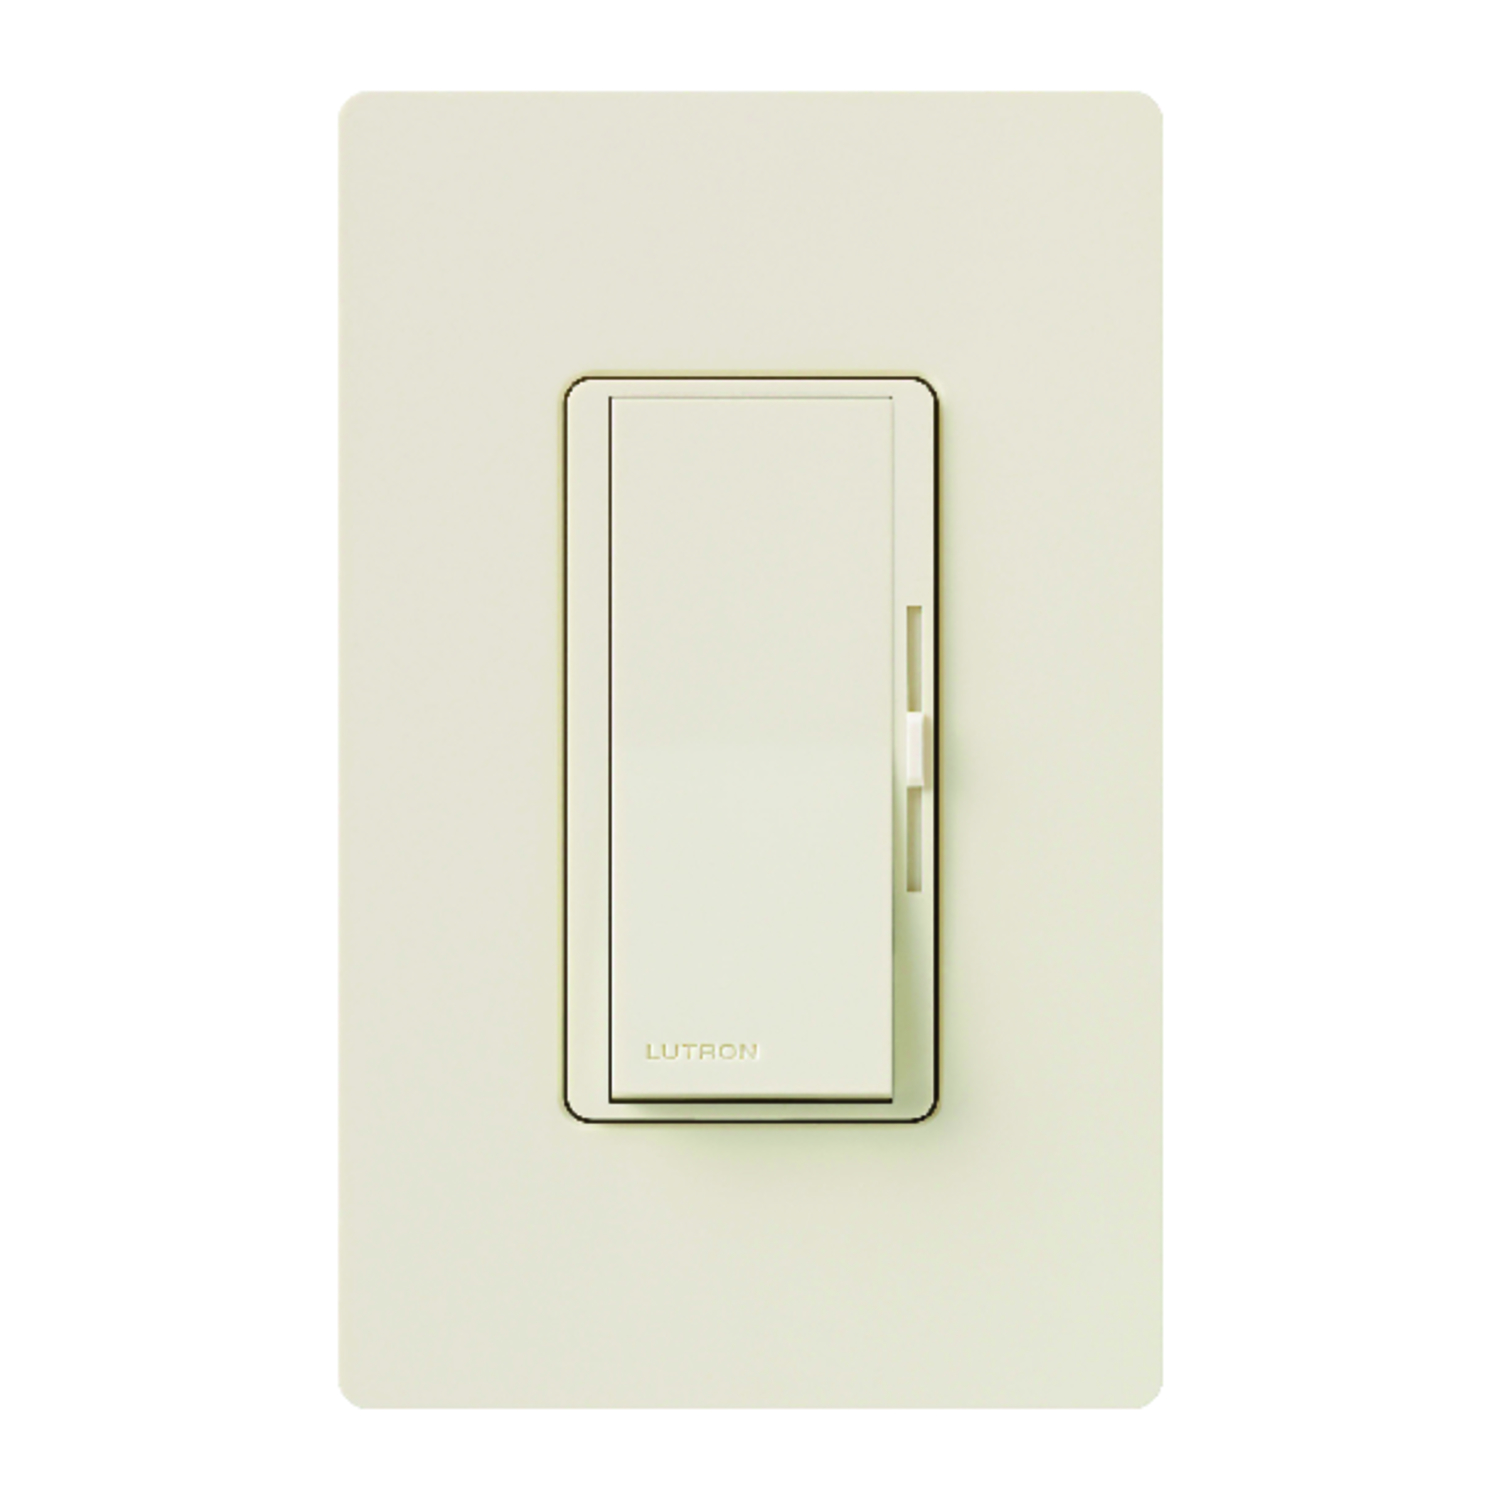 Lutron  Diva  150 watts 3-Way  Dimmer Switch  1  Light Almond